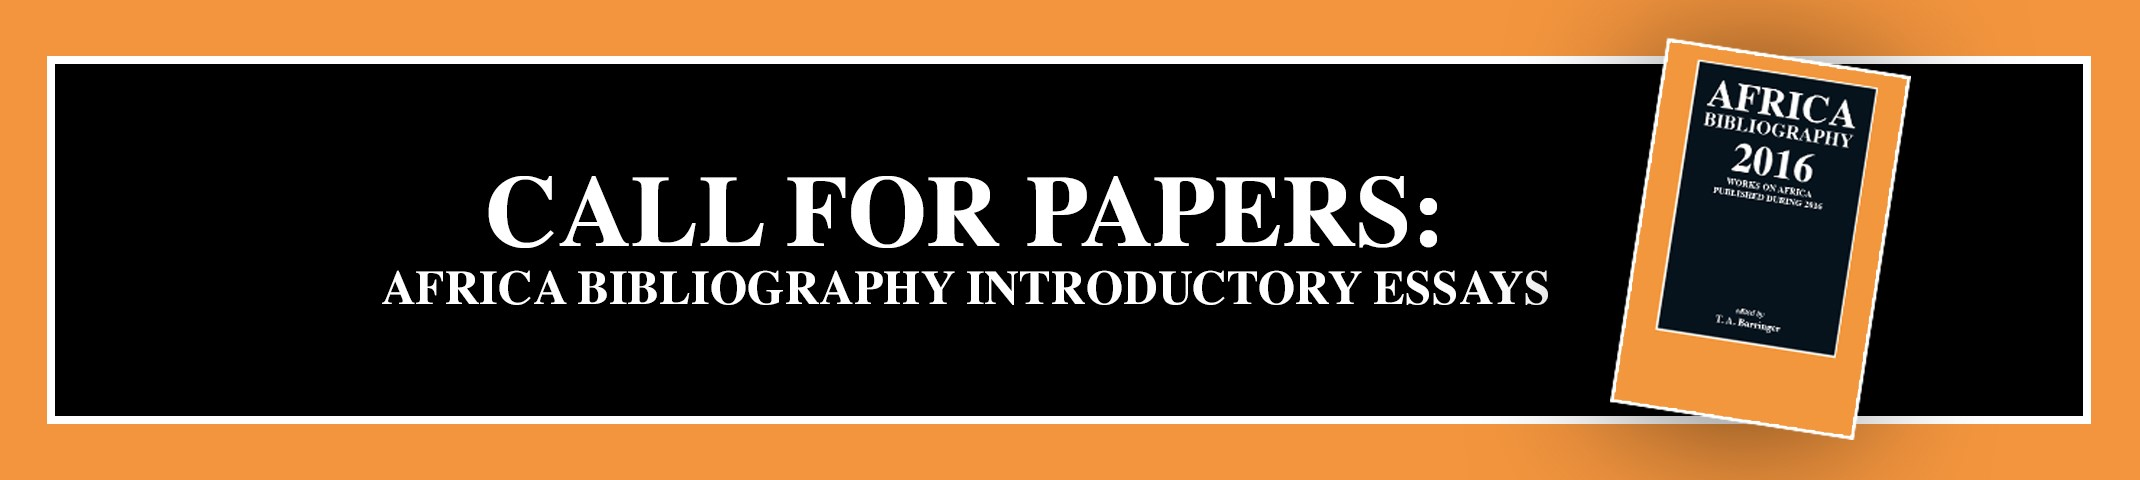 Call for Papers: Africa Bibliography Introductory Essays